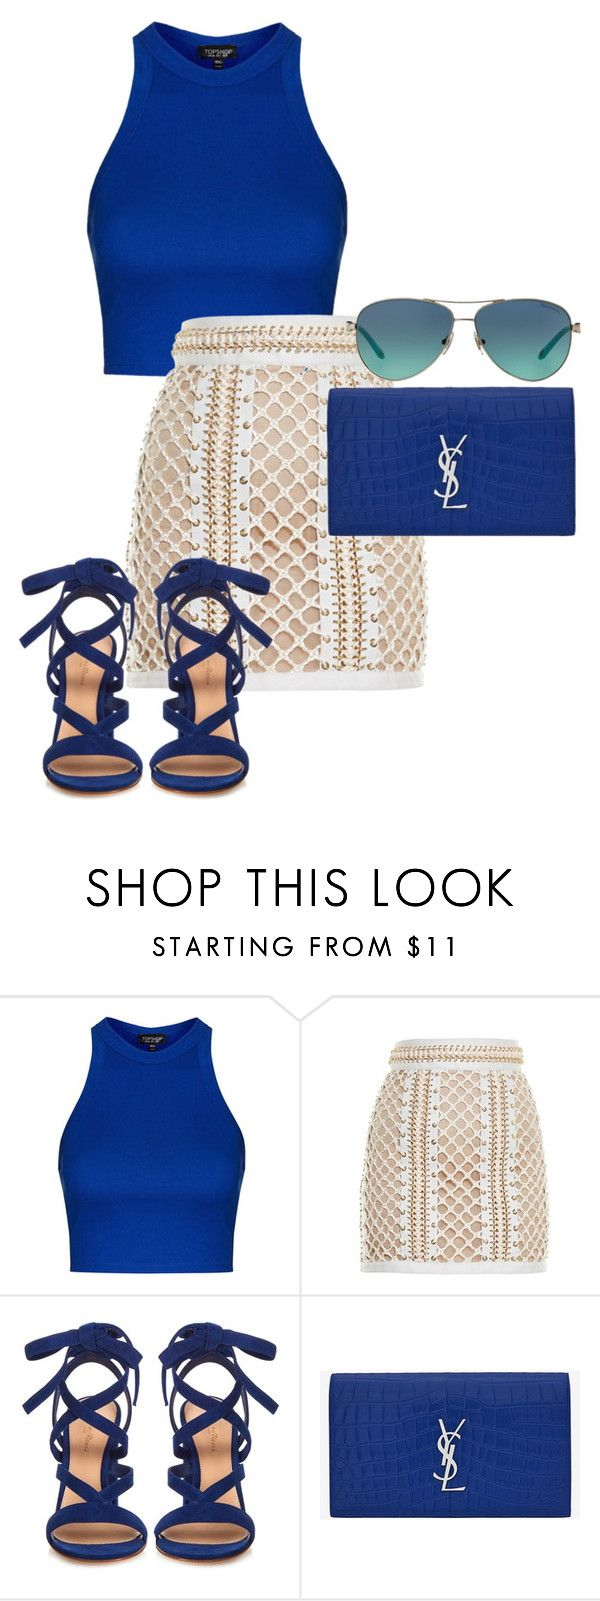 """Untitled #270"" by minnie300056 on Polyvore featuring Topshop, Balmain, Gianvito Rossi, Yves Saint Laurent, Tiffany & Co., women's clothing, women, female, woman and misses"